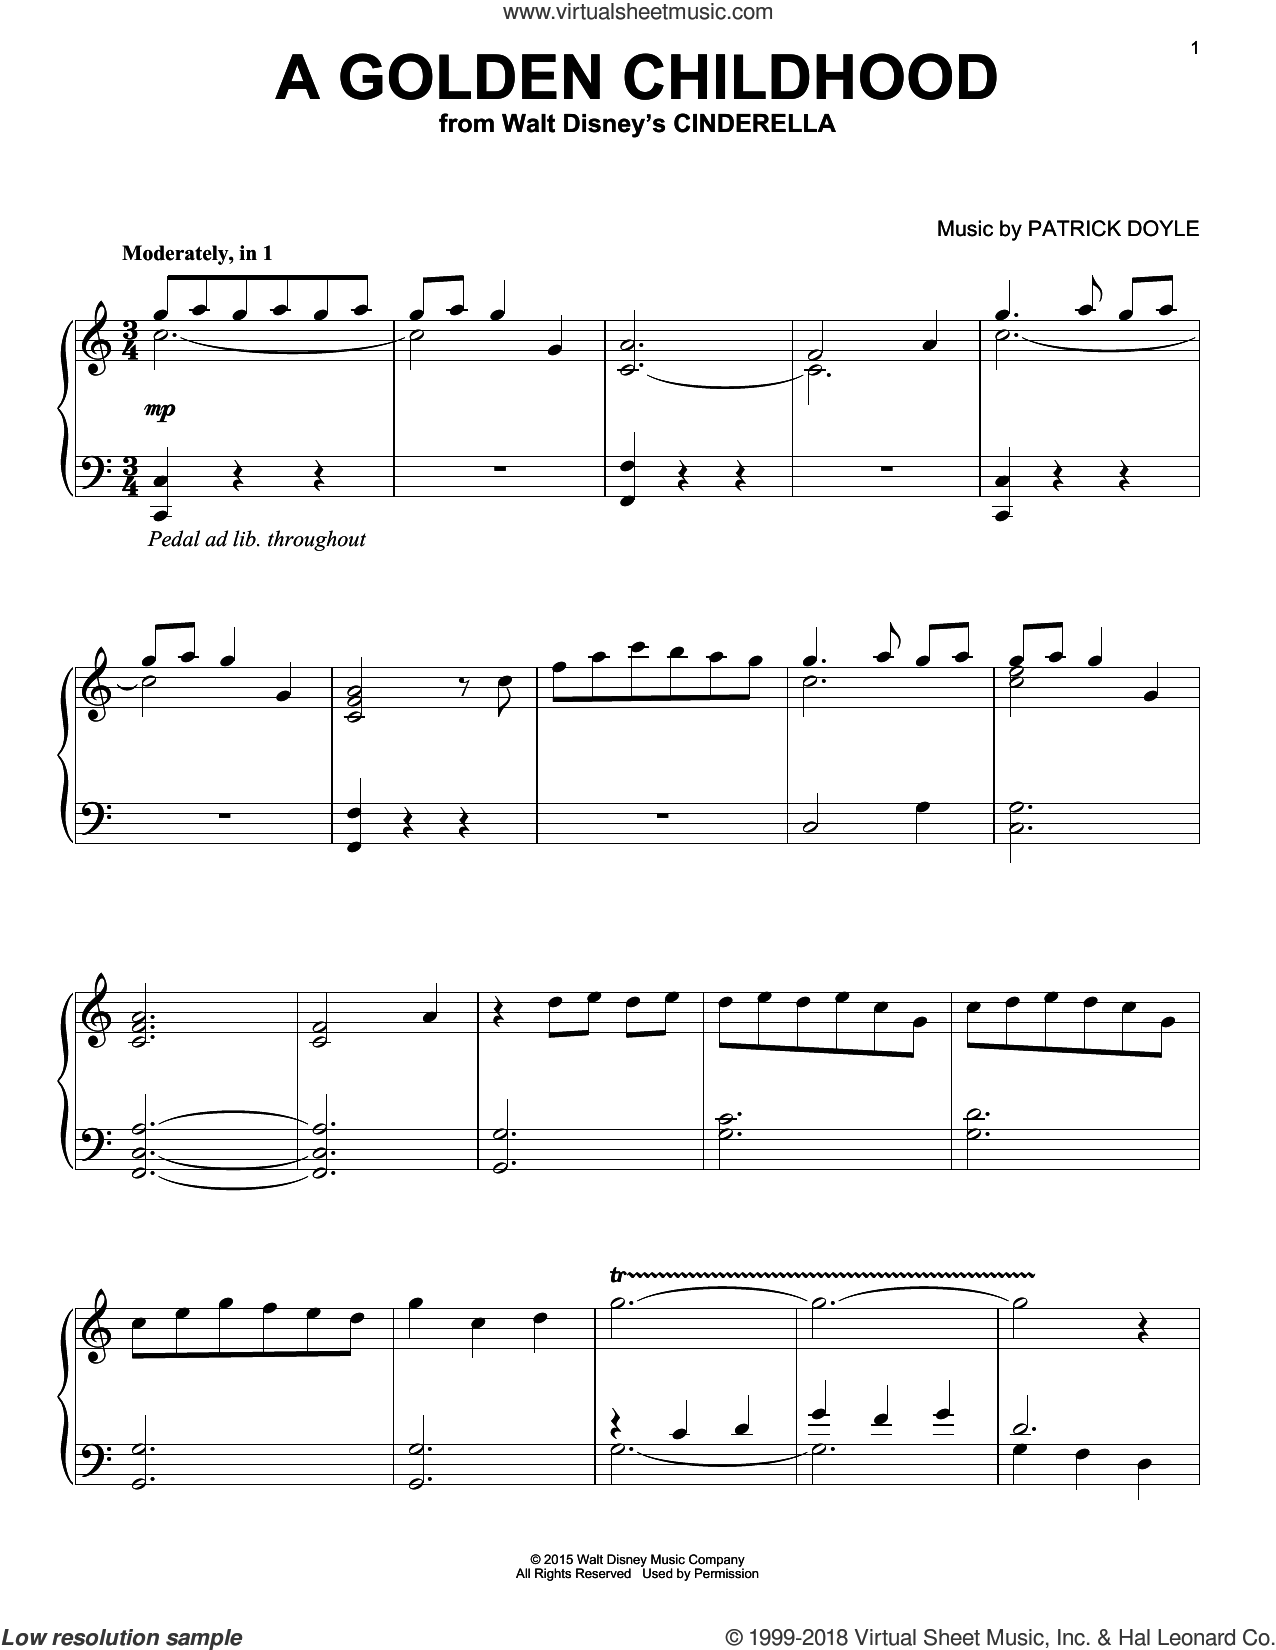 A Golden Childhood sheet music for piano solo by Patrick Doyle, intermediate skill level